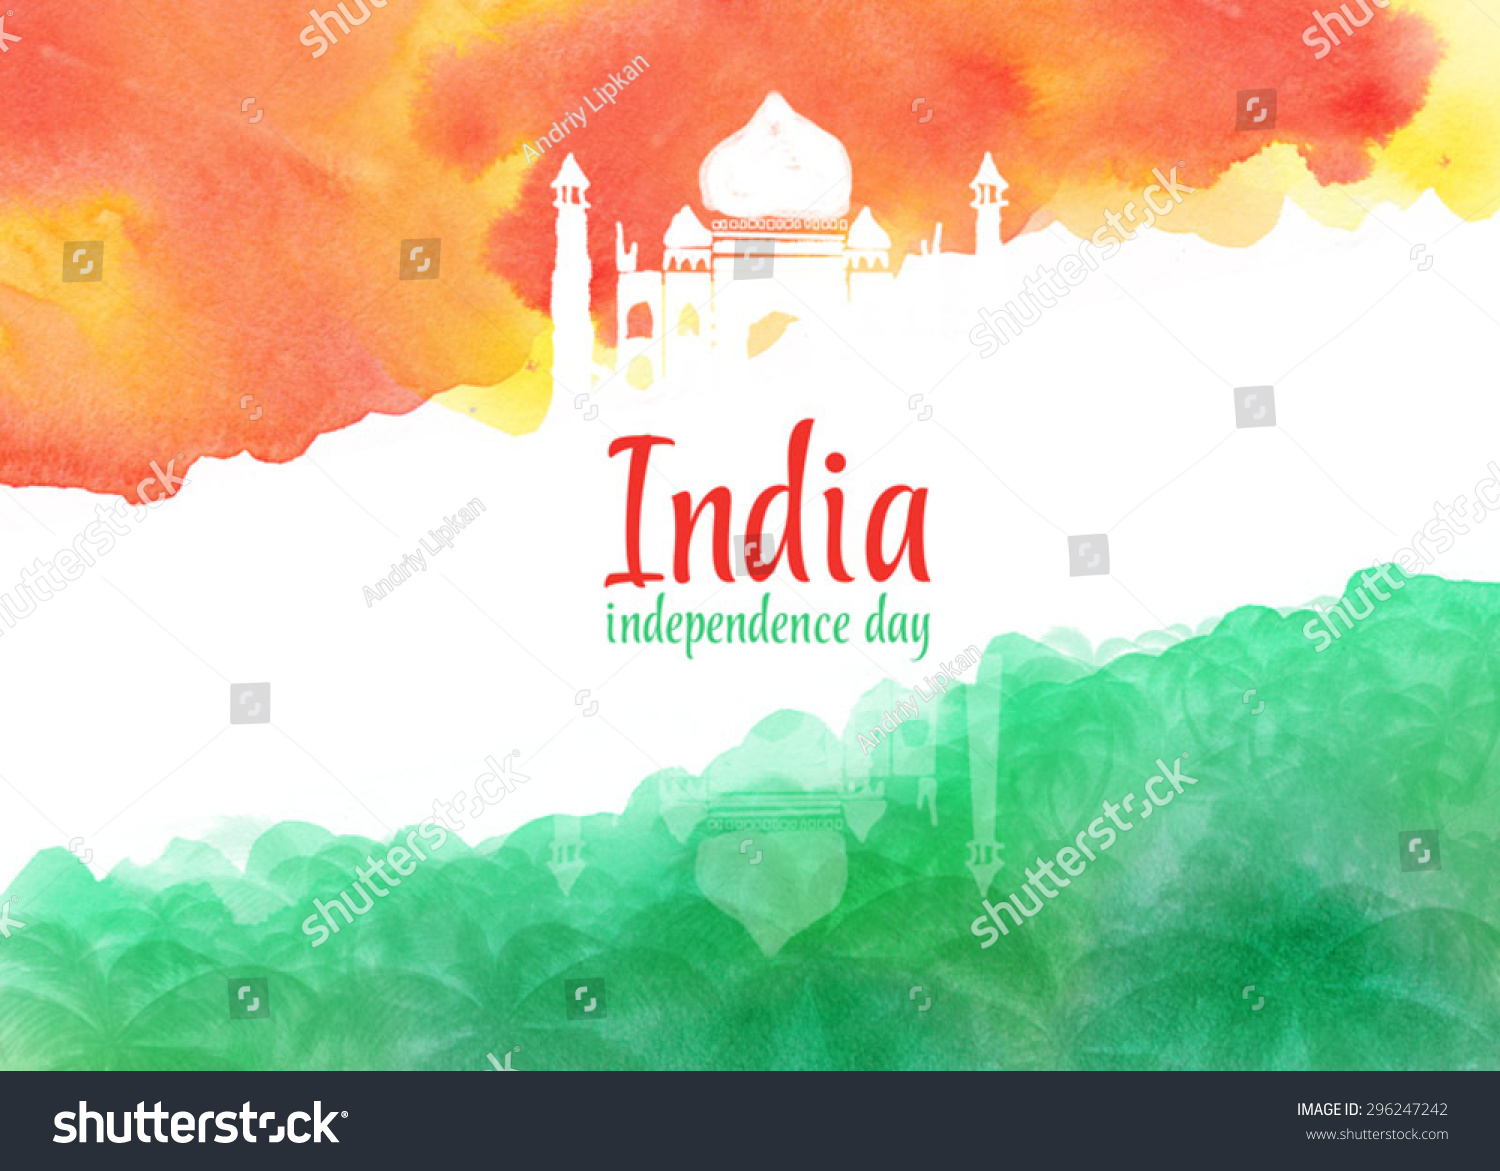 Creative Watercolor Indian Flag Background For Indian: Watercolor Background For Indian Independence Day